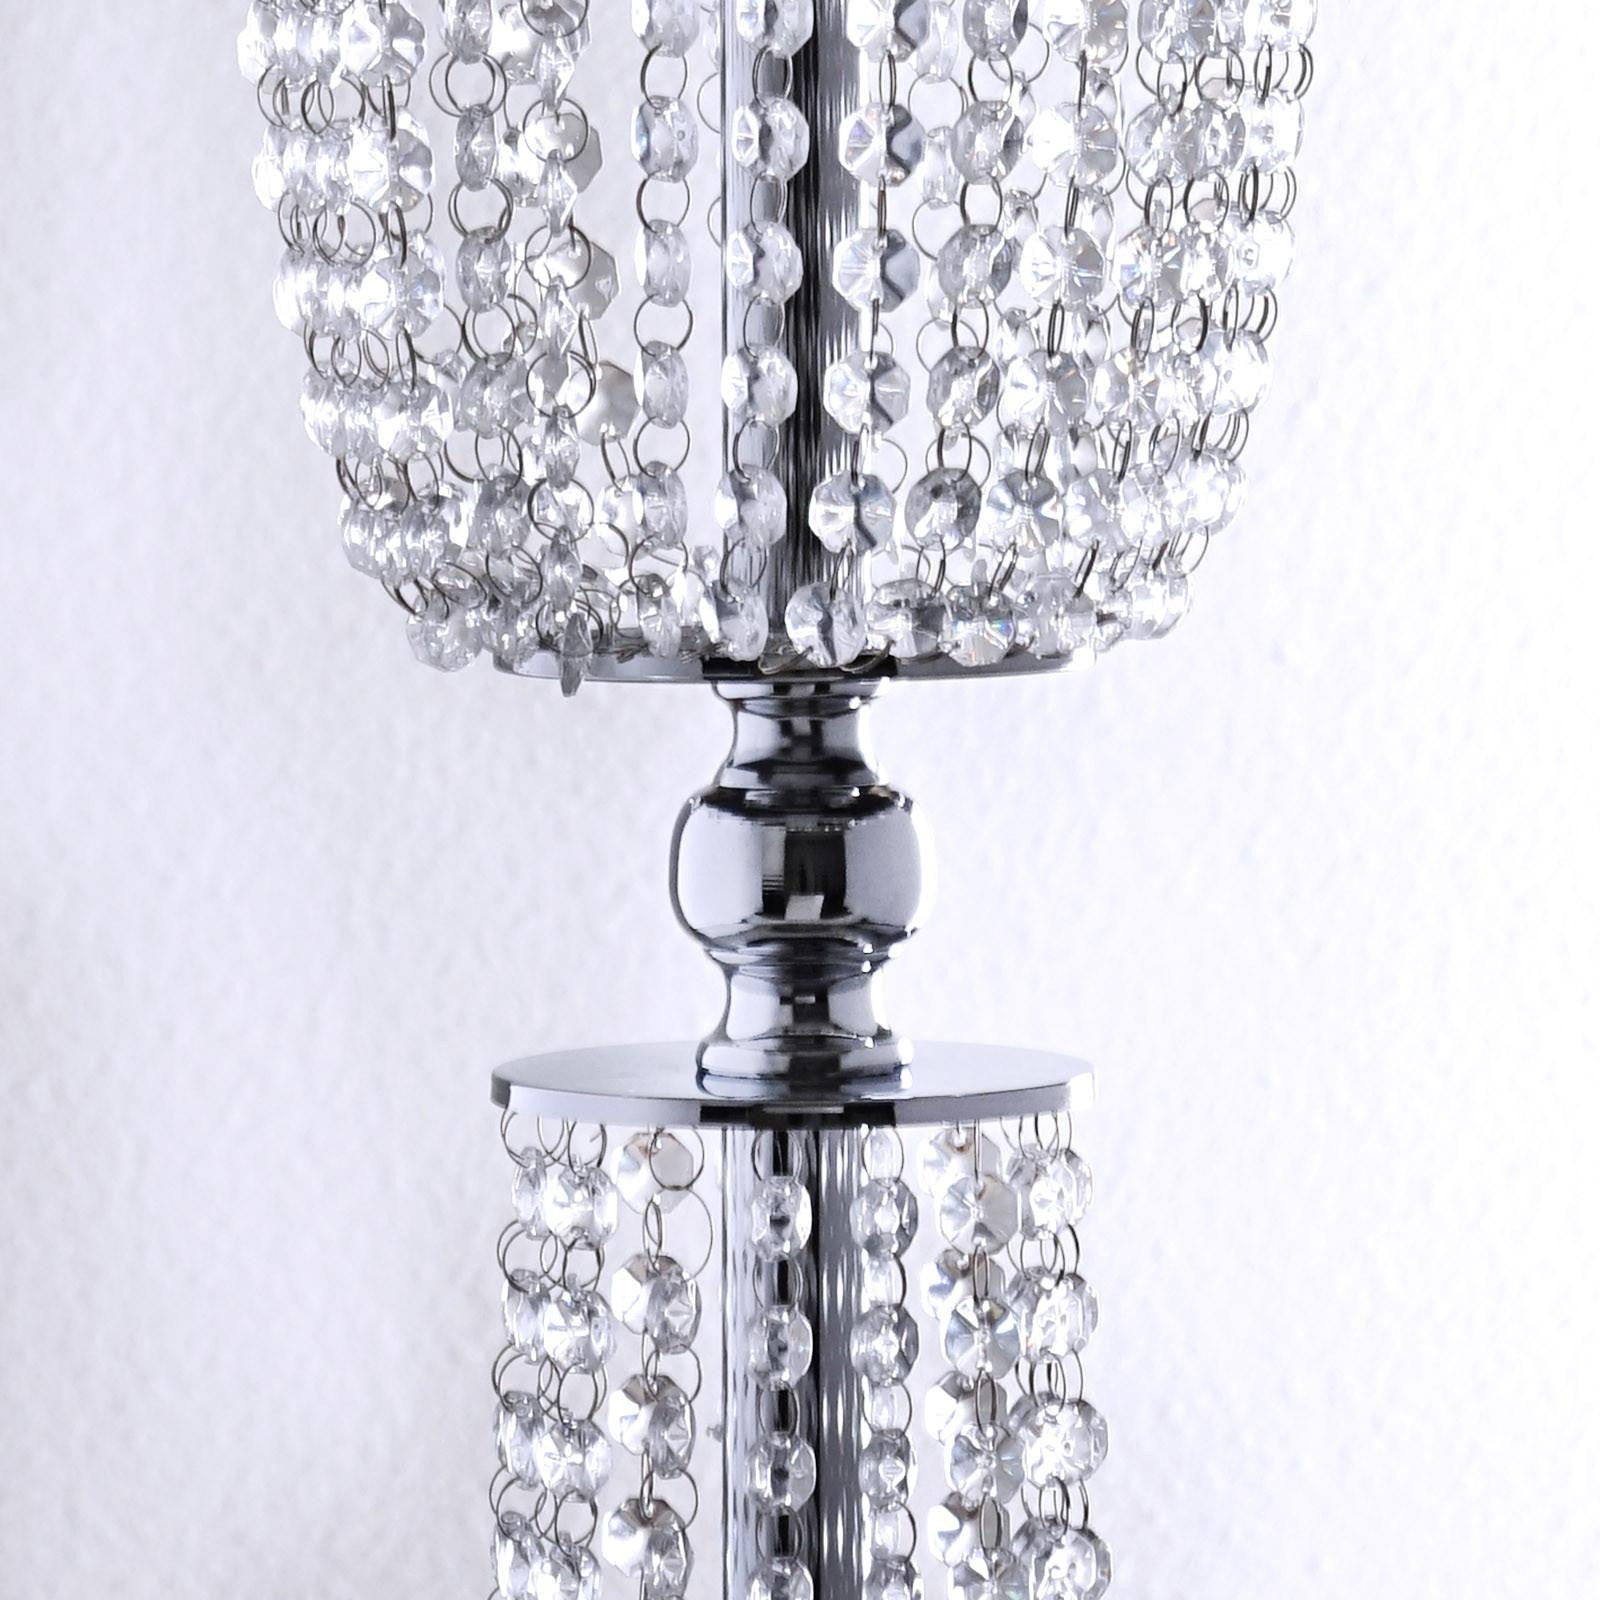 Maybelline Exotic Designer Crystal Garland Chandelier Wedding ...